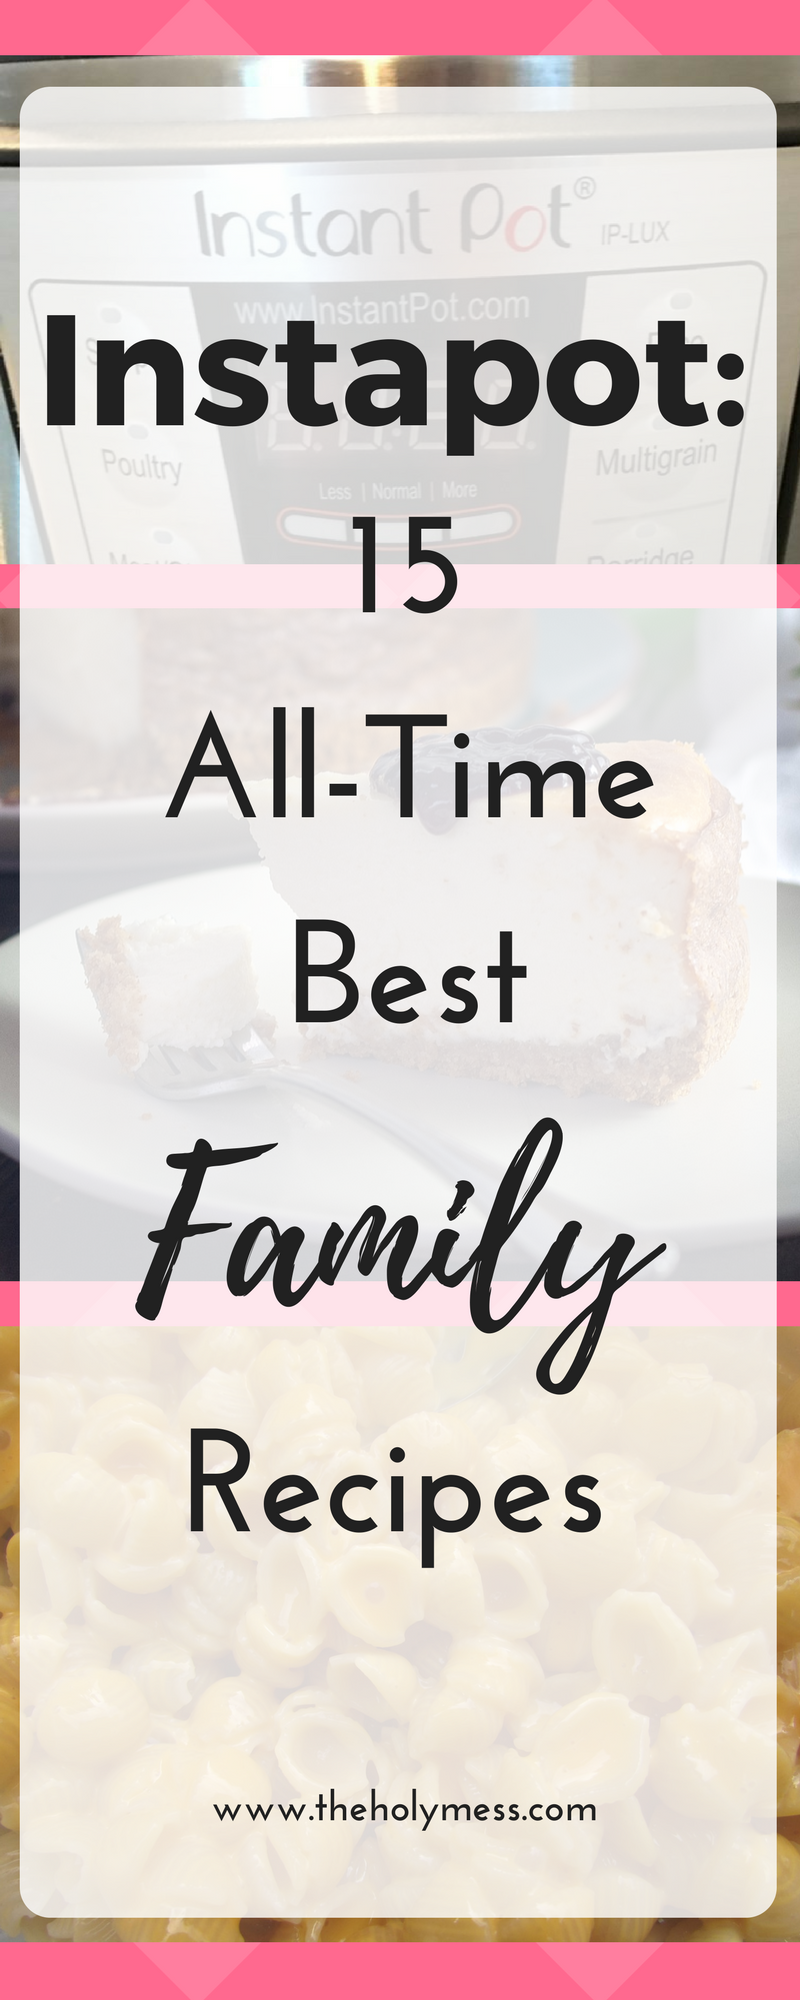 Instapot|Recipes|Family|Dinner|Main Dish|Pressure Cooker|Kid Friendly|Easy|Fast